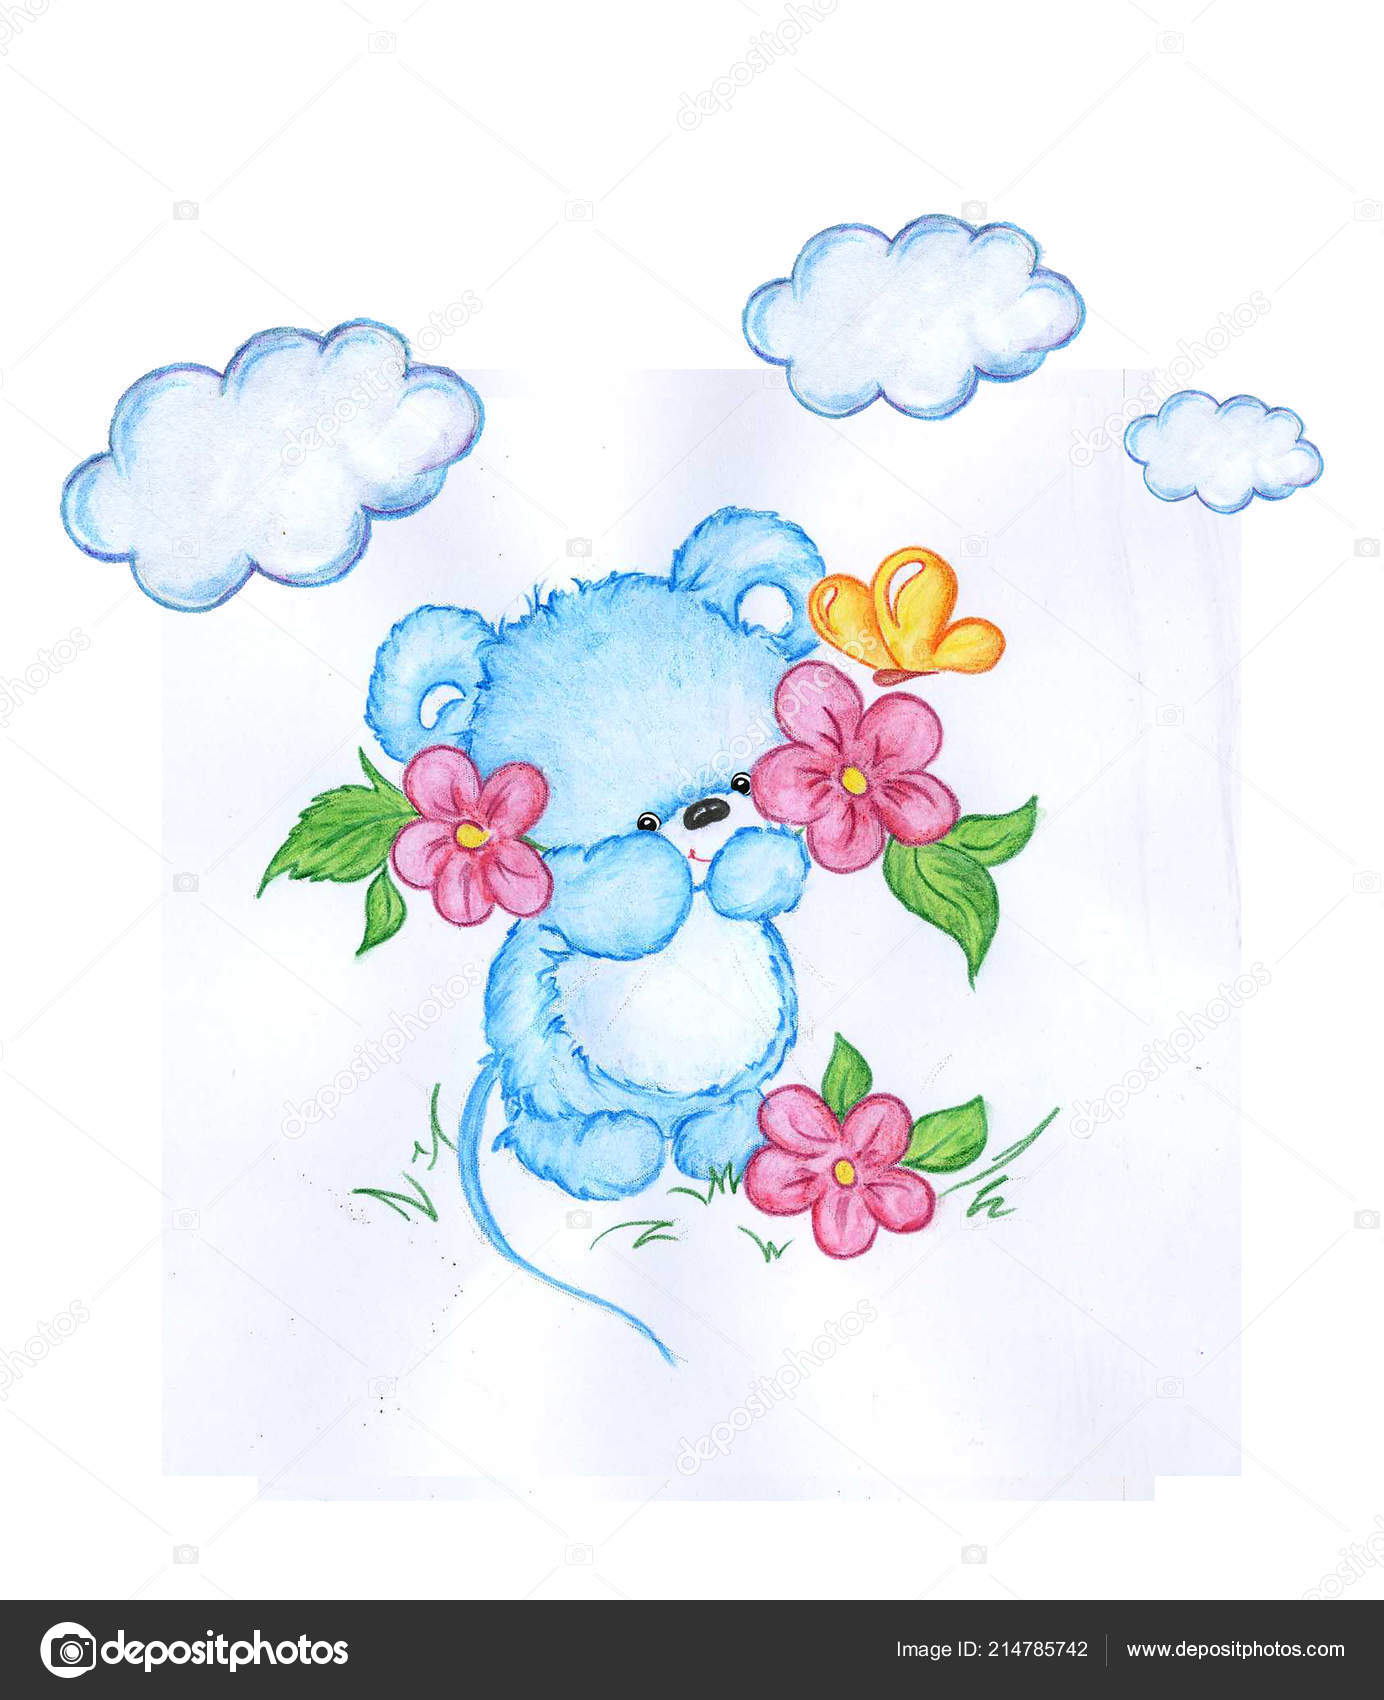 Ute Little Mouse Flowers Butterfly Perfect Kids Print Birthday Cards Stock Photo